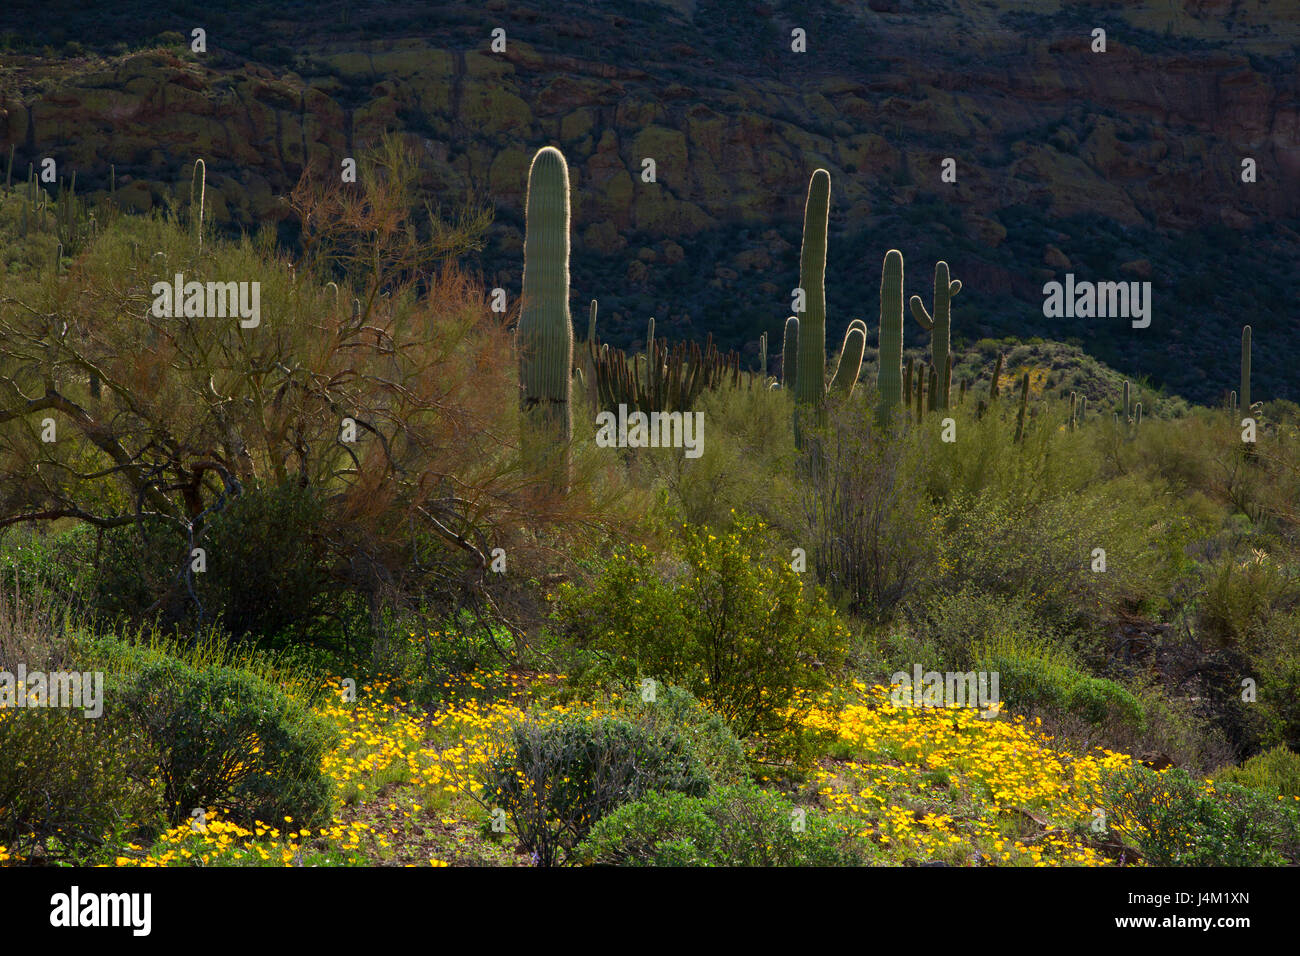 Desert with mexican poppies along Ajo Mountain Drive, Organ Pipe Cactus National Monument, Arizona - Stock Image